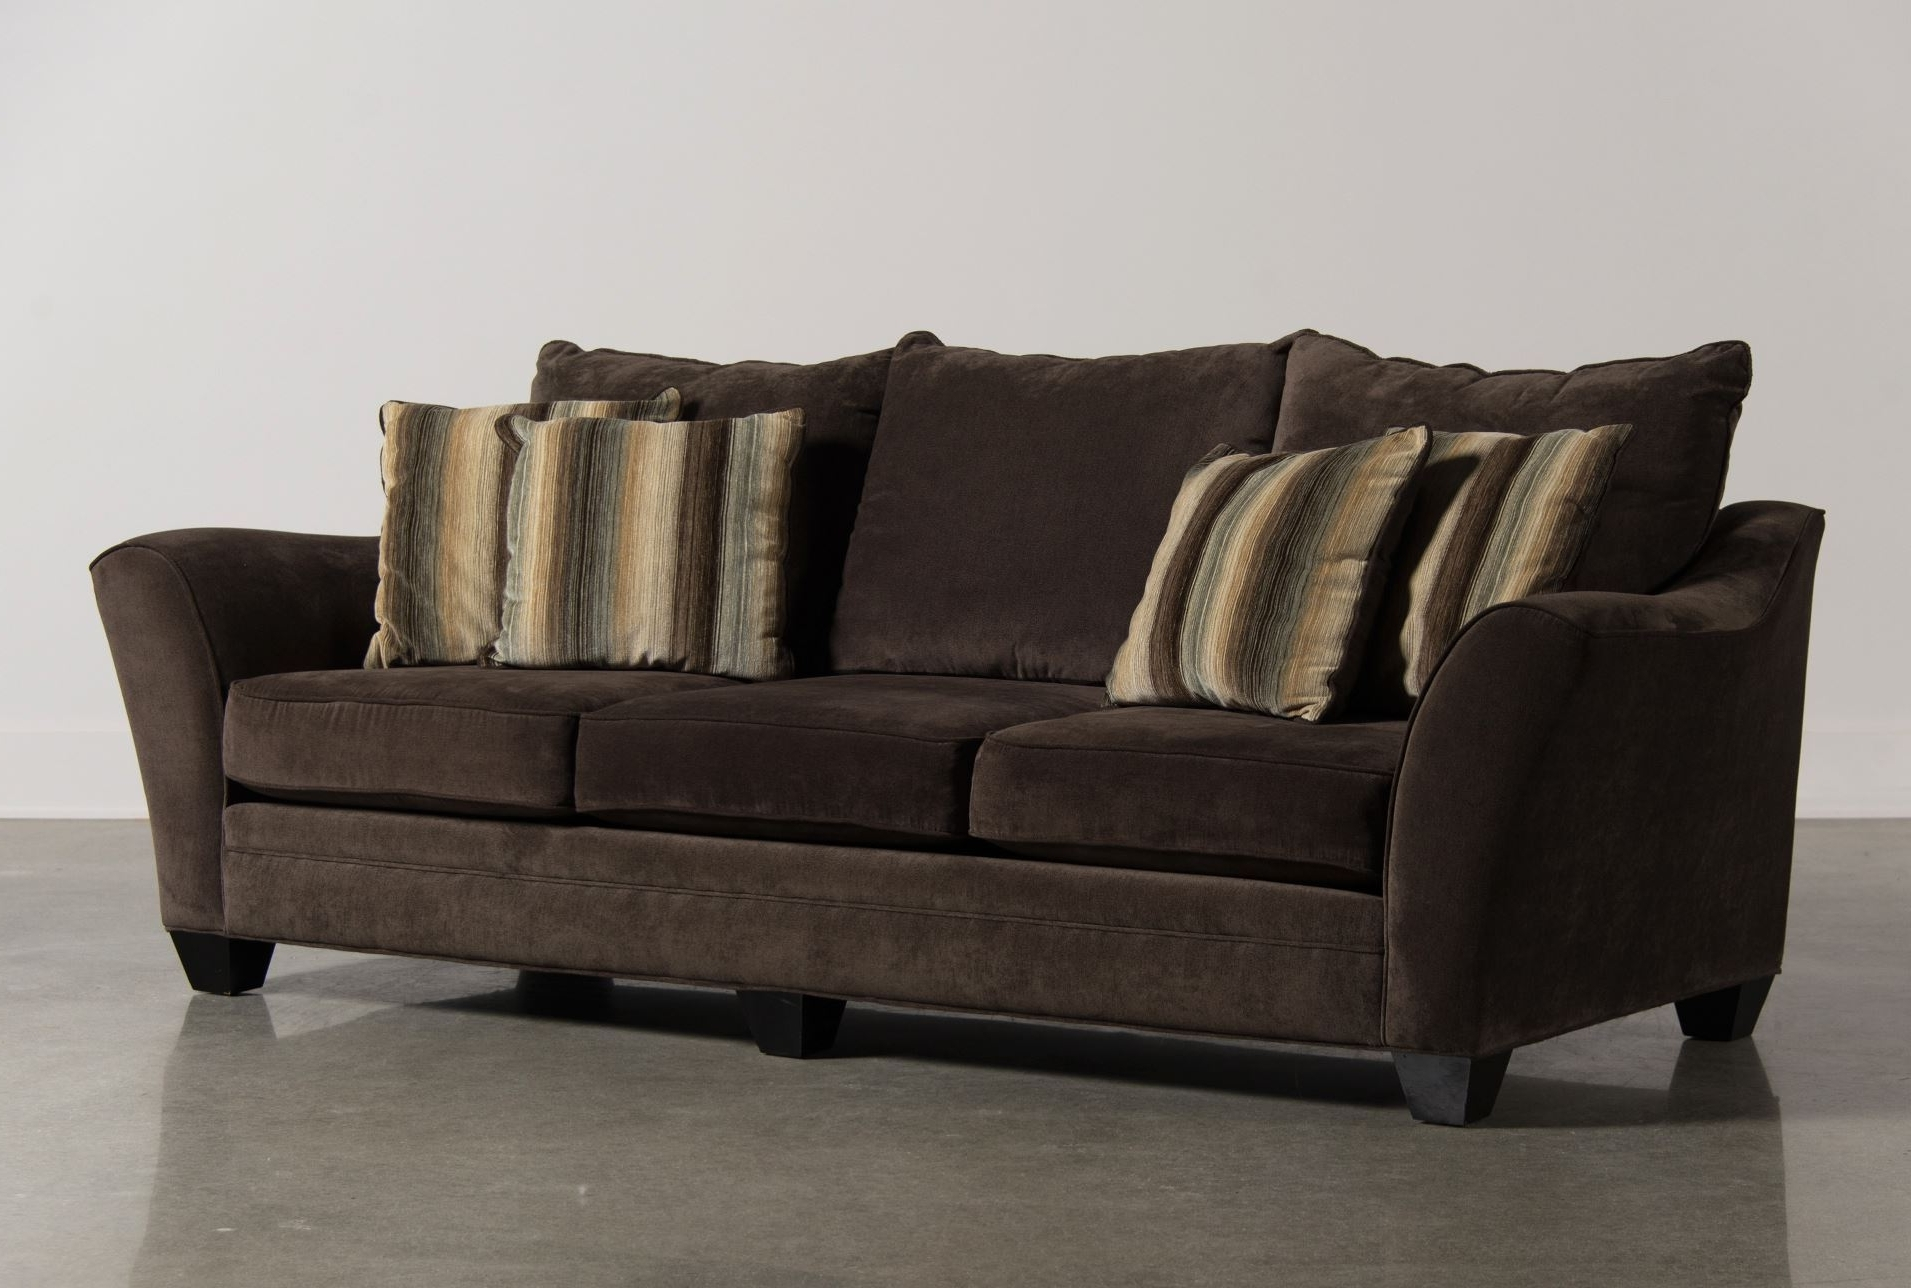 Comfortable Sofas And Chairs Within Preferred Belleview Slate Sofa – Living Spaces One Of The Most Comfortable (View 9 of 20)